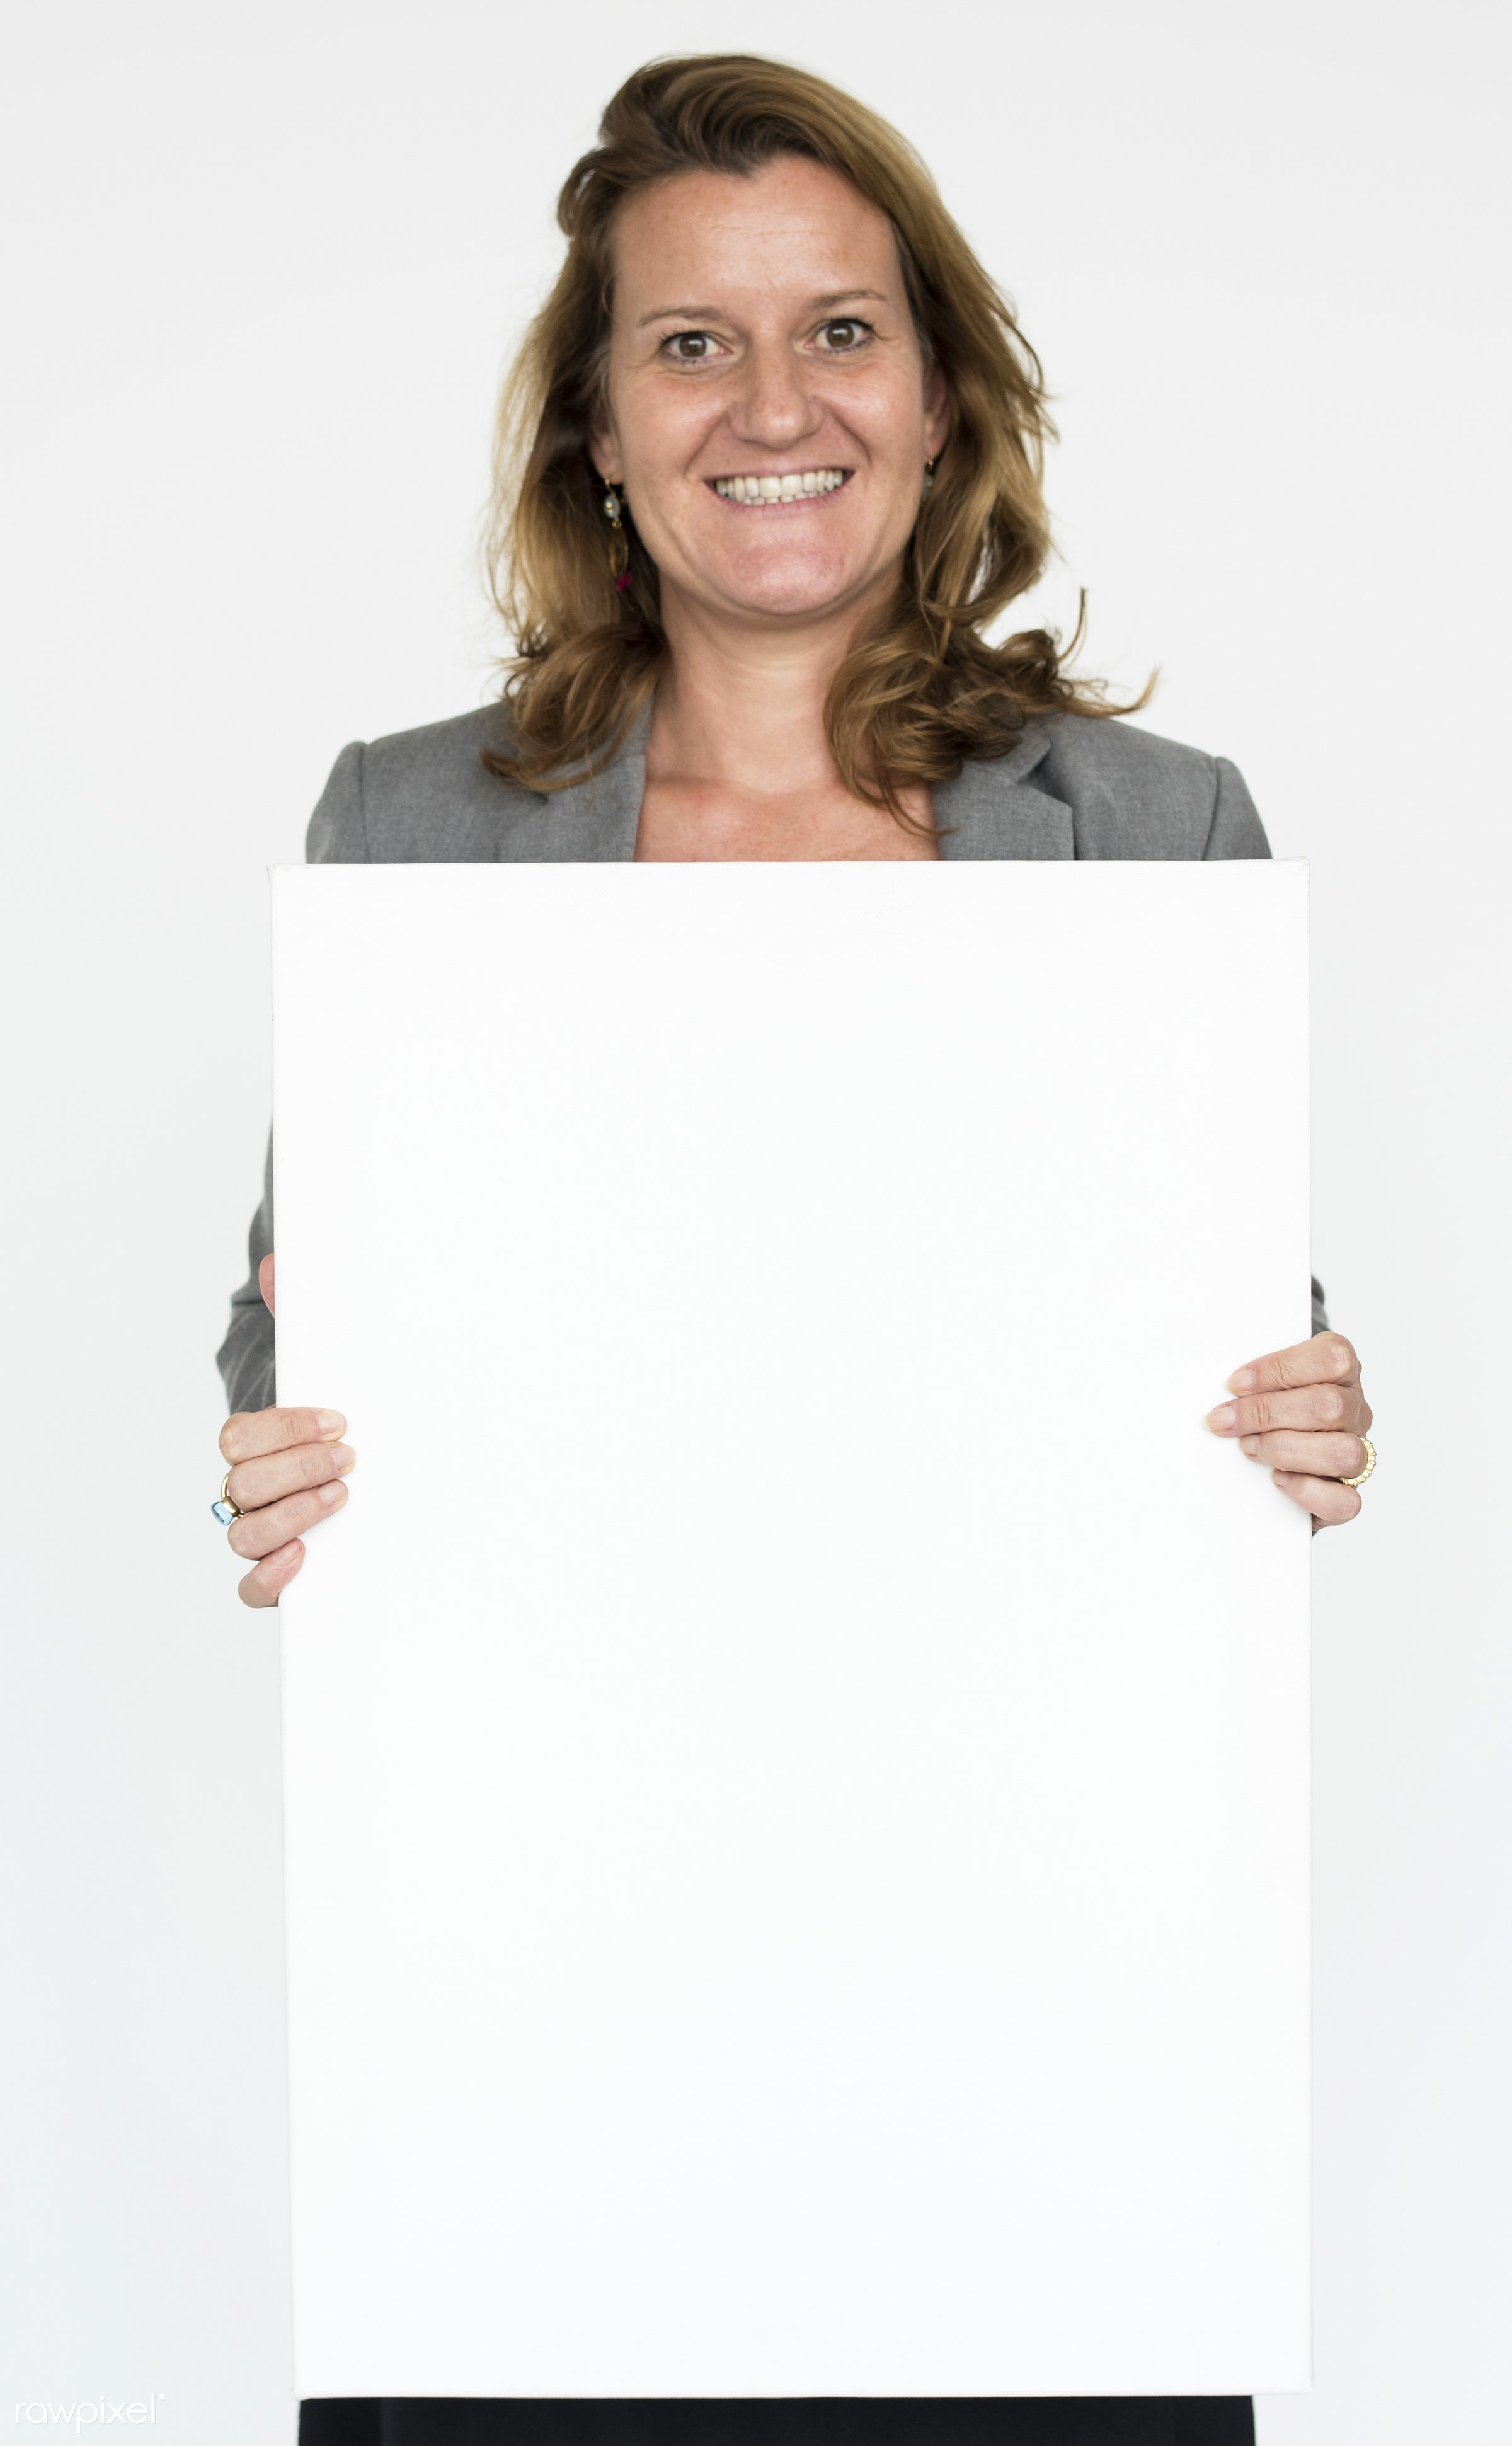 advertising, background, banner, blank, board, brunette, businesswoman, casual, caucasian, copy space, emotion, empty,...